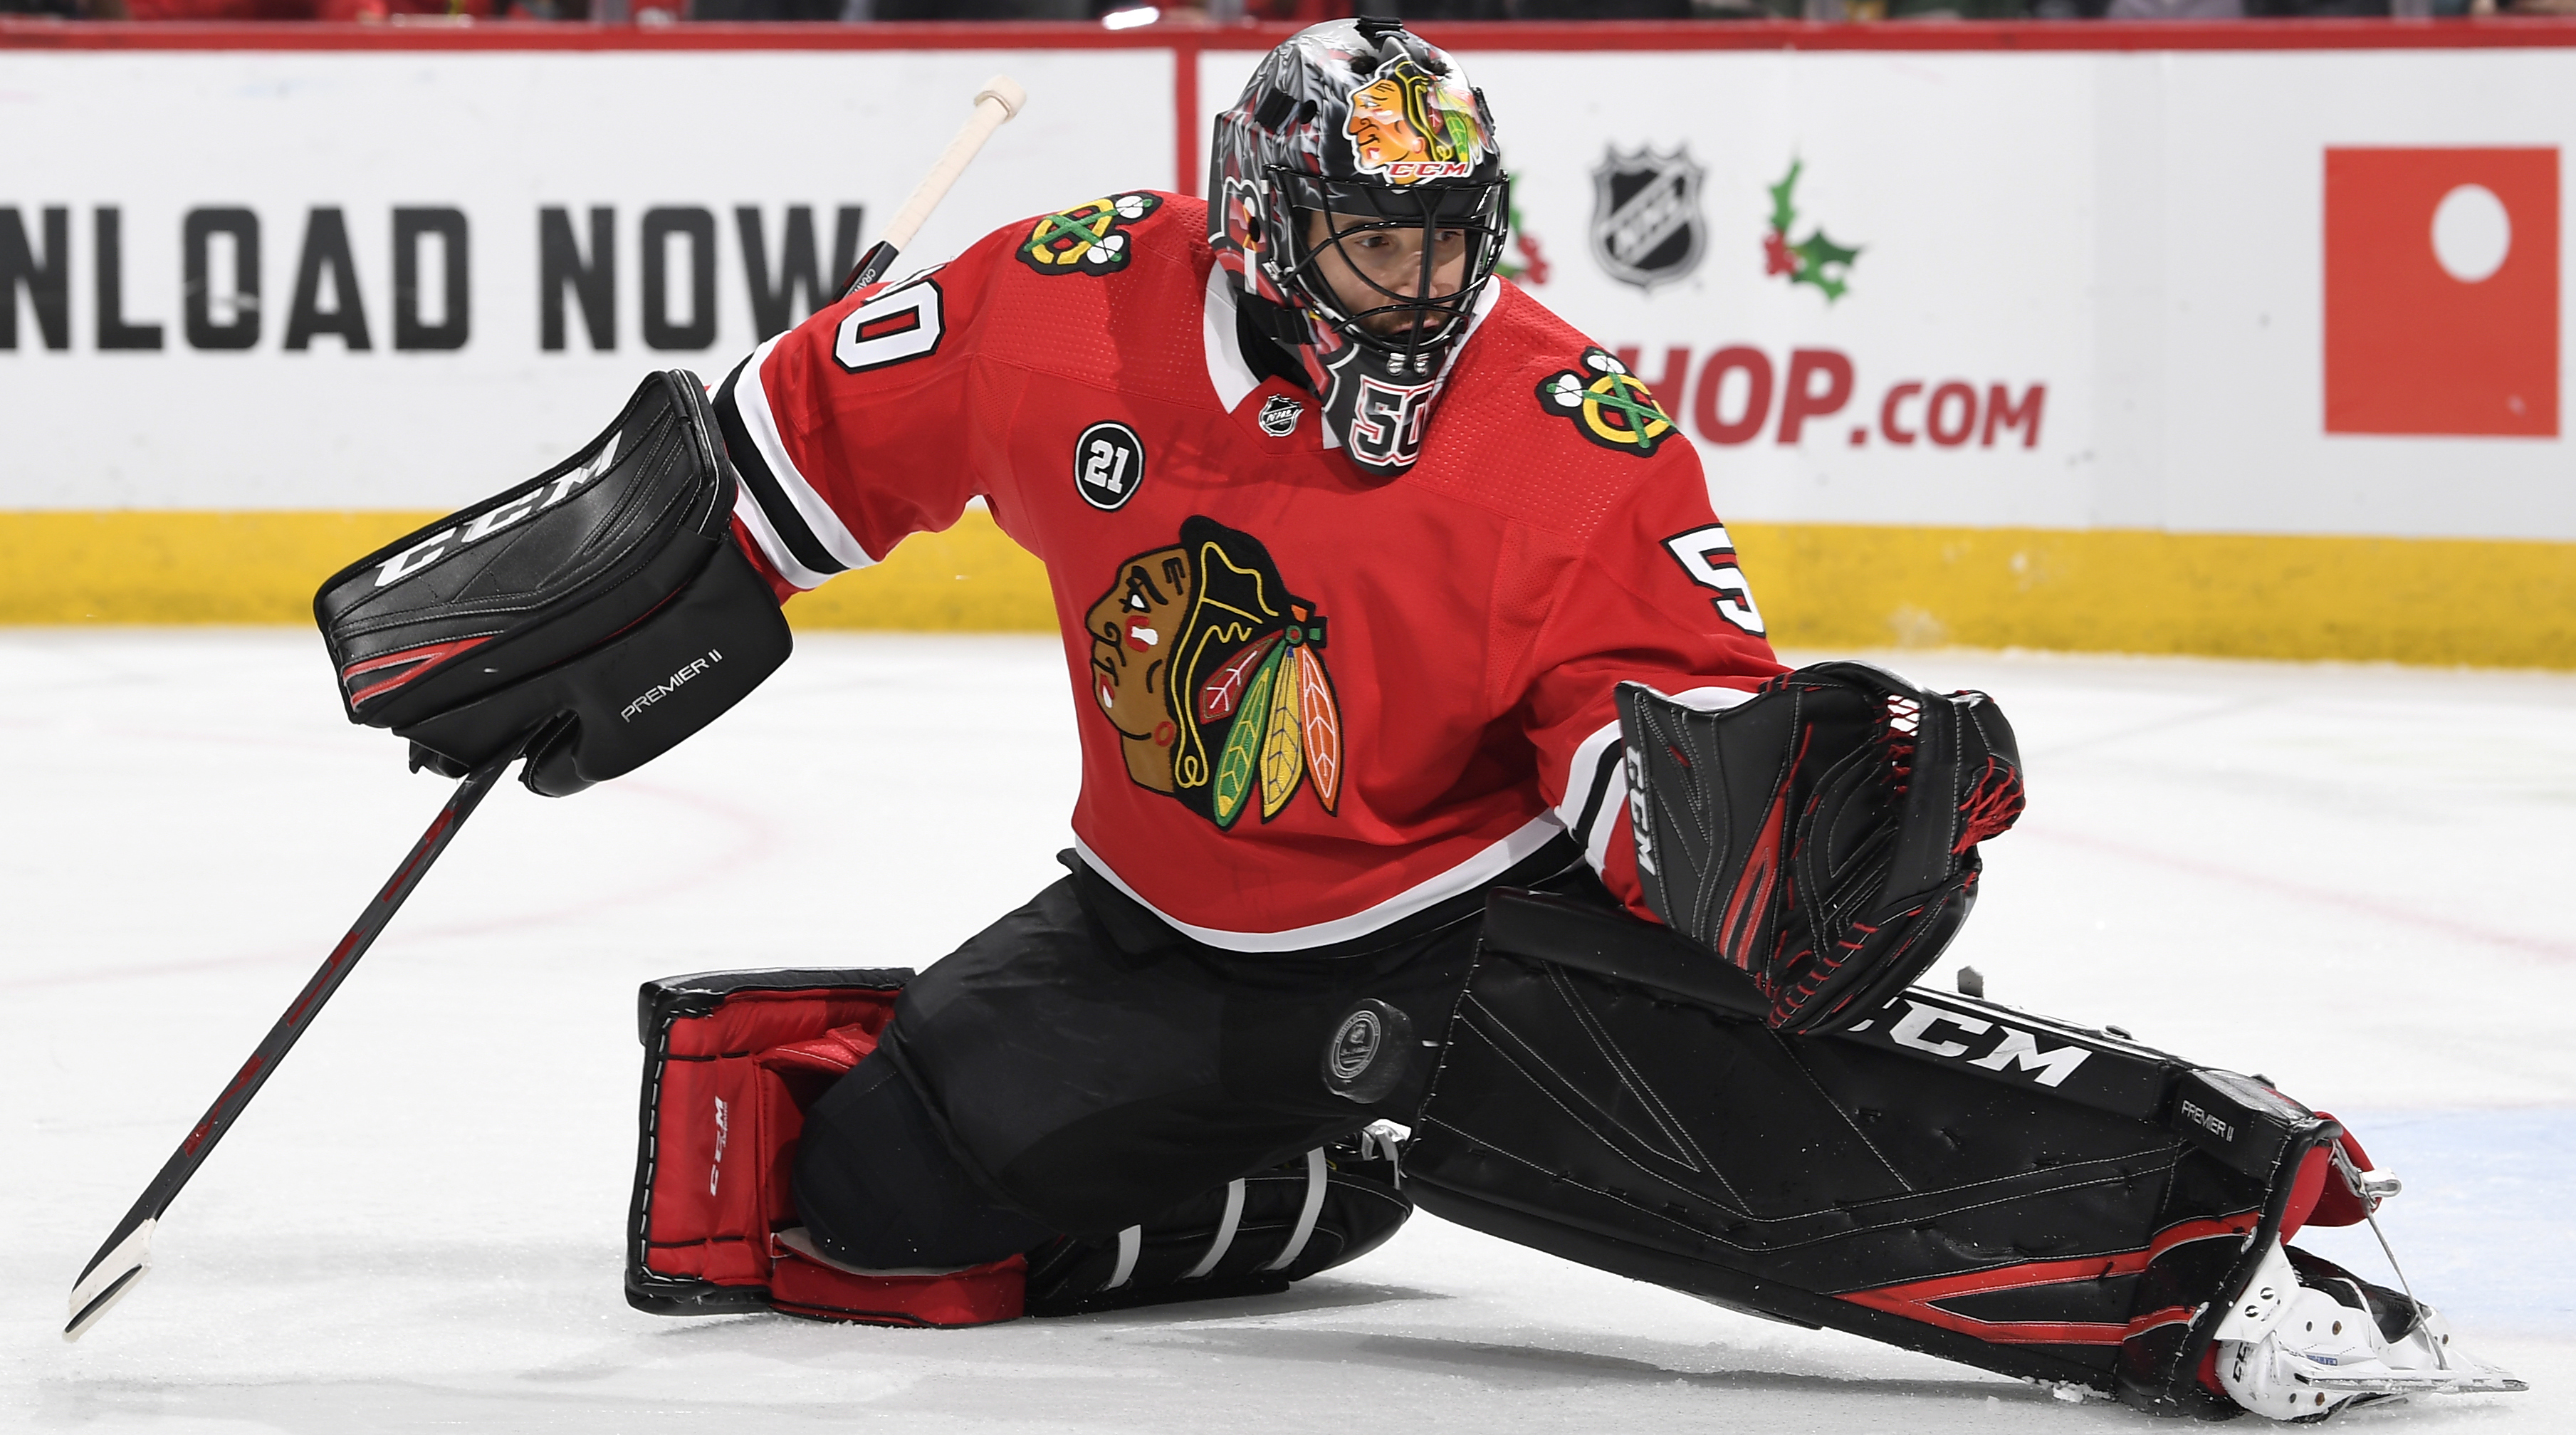 Corey-crawford-injury